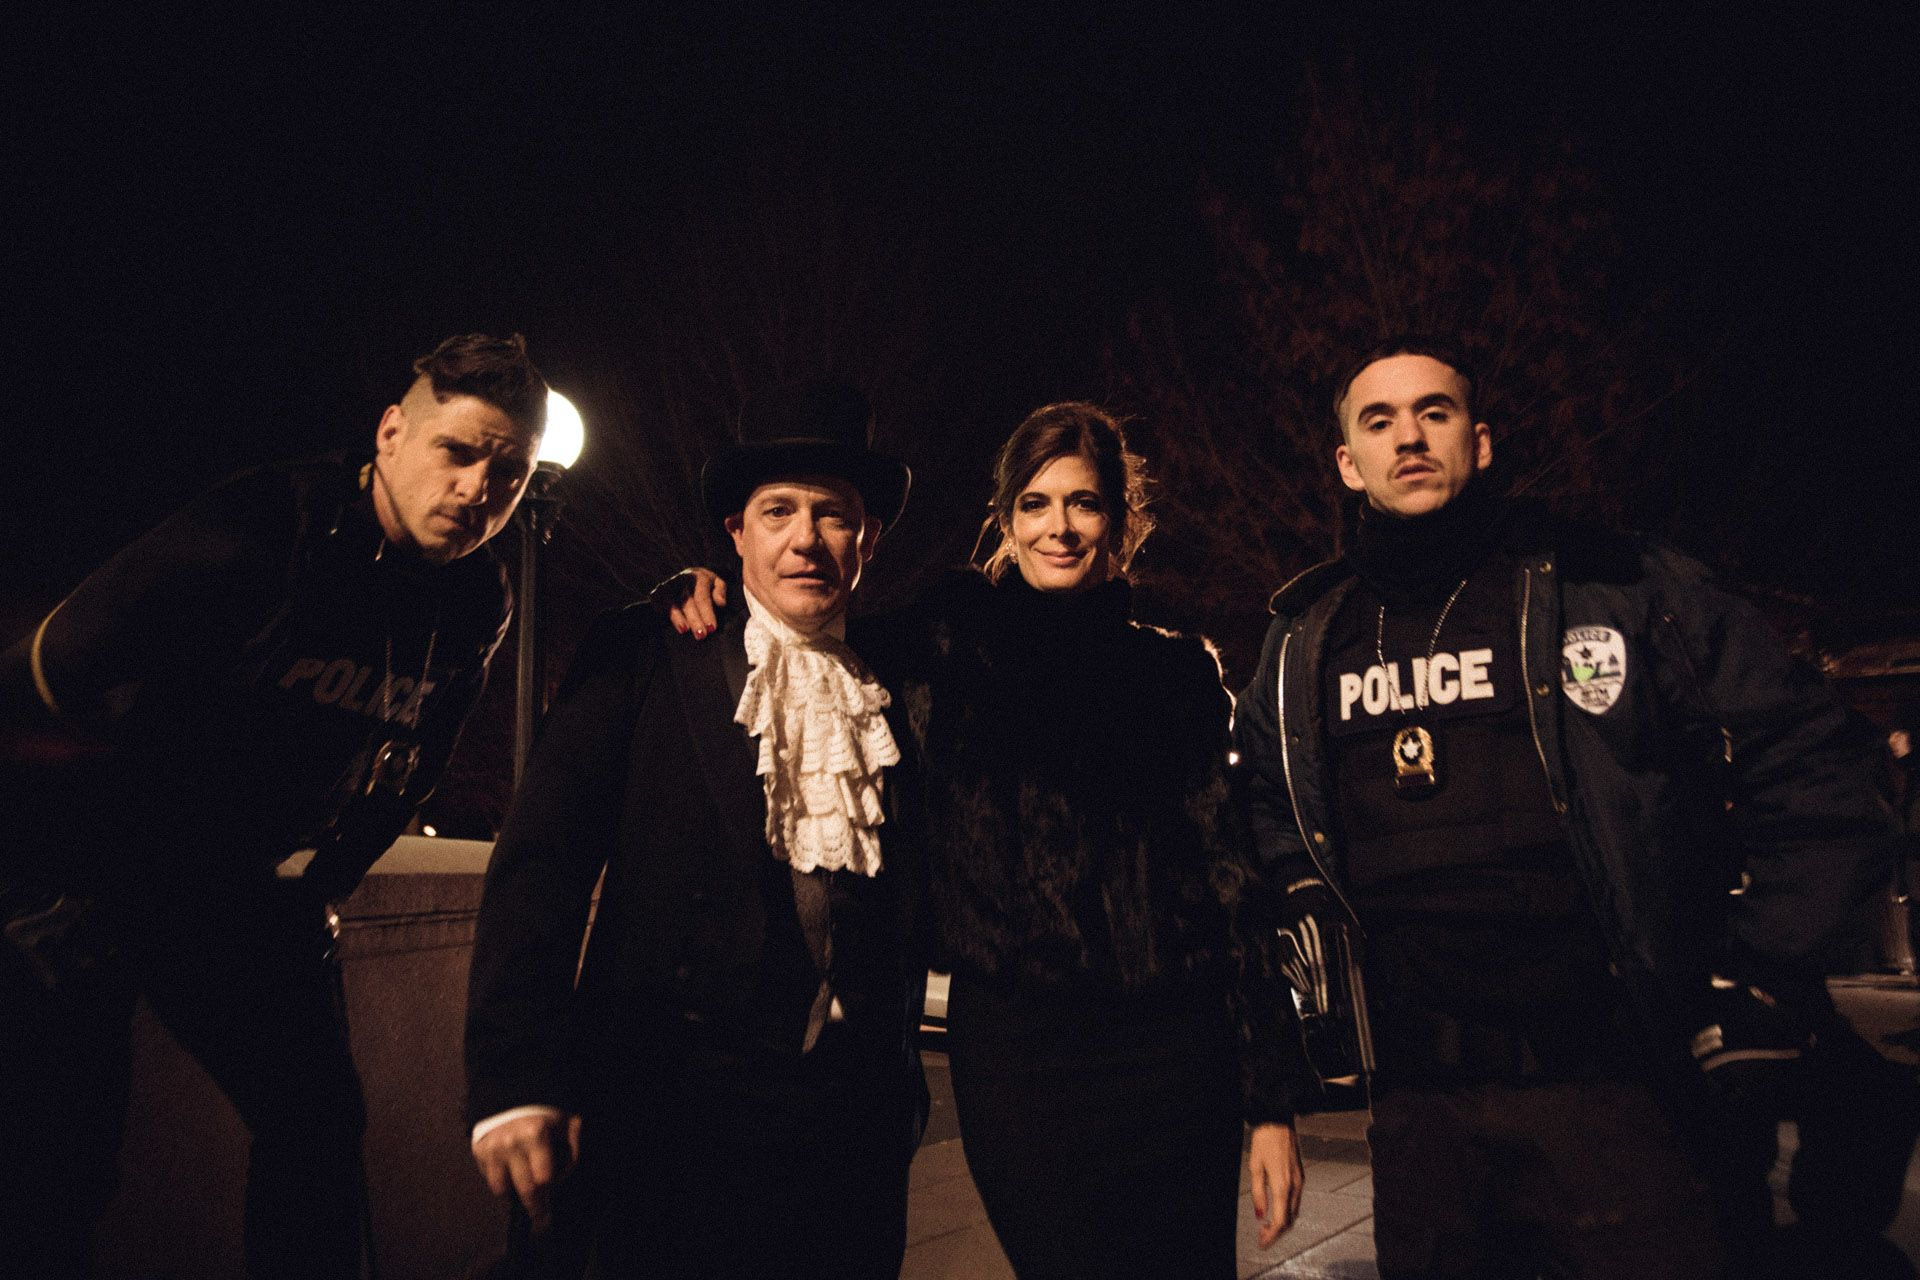 actors Hugolin Chevrette-Landesque and Emile Schneider dressed as cops with two of their co-actors posing for pictures in front of Marche Maisonneuve in behind the scenes for TV series La Loi C'est La Loi filmed by Les Gamins for TV5 Unis